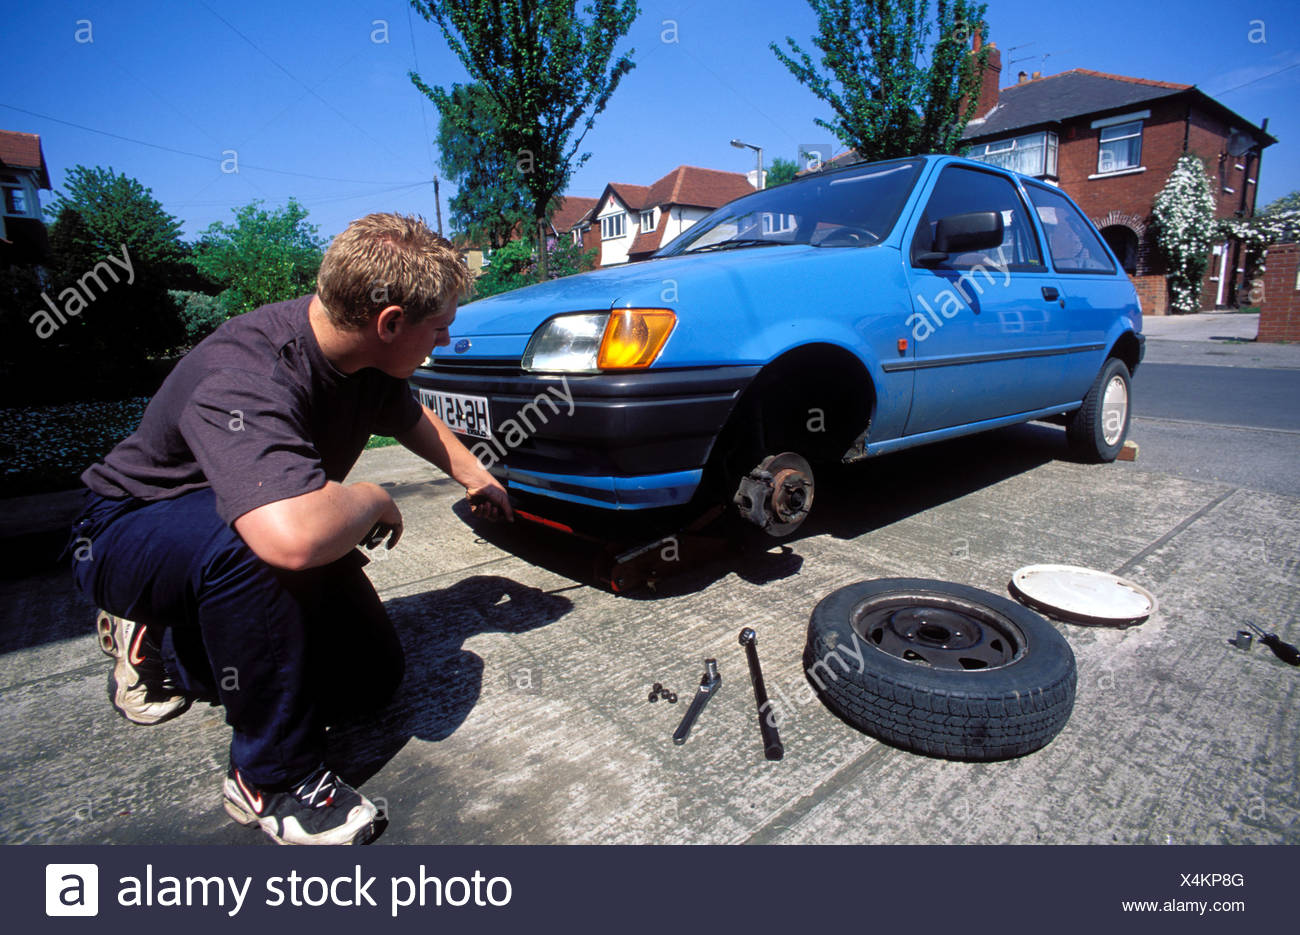 jacked up car stock photos & jacked up car stock images - alamy